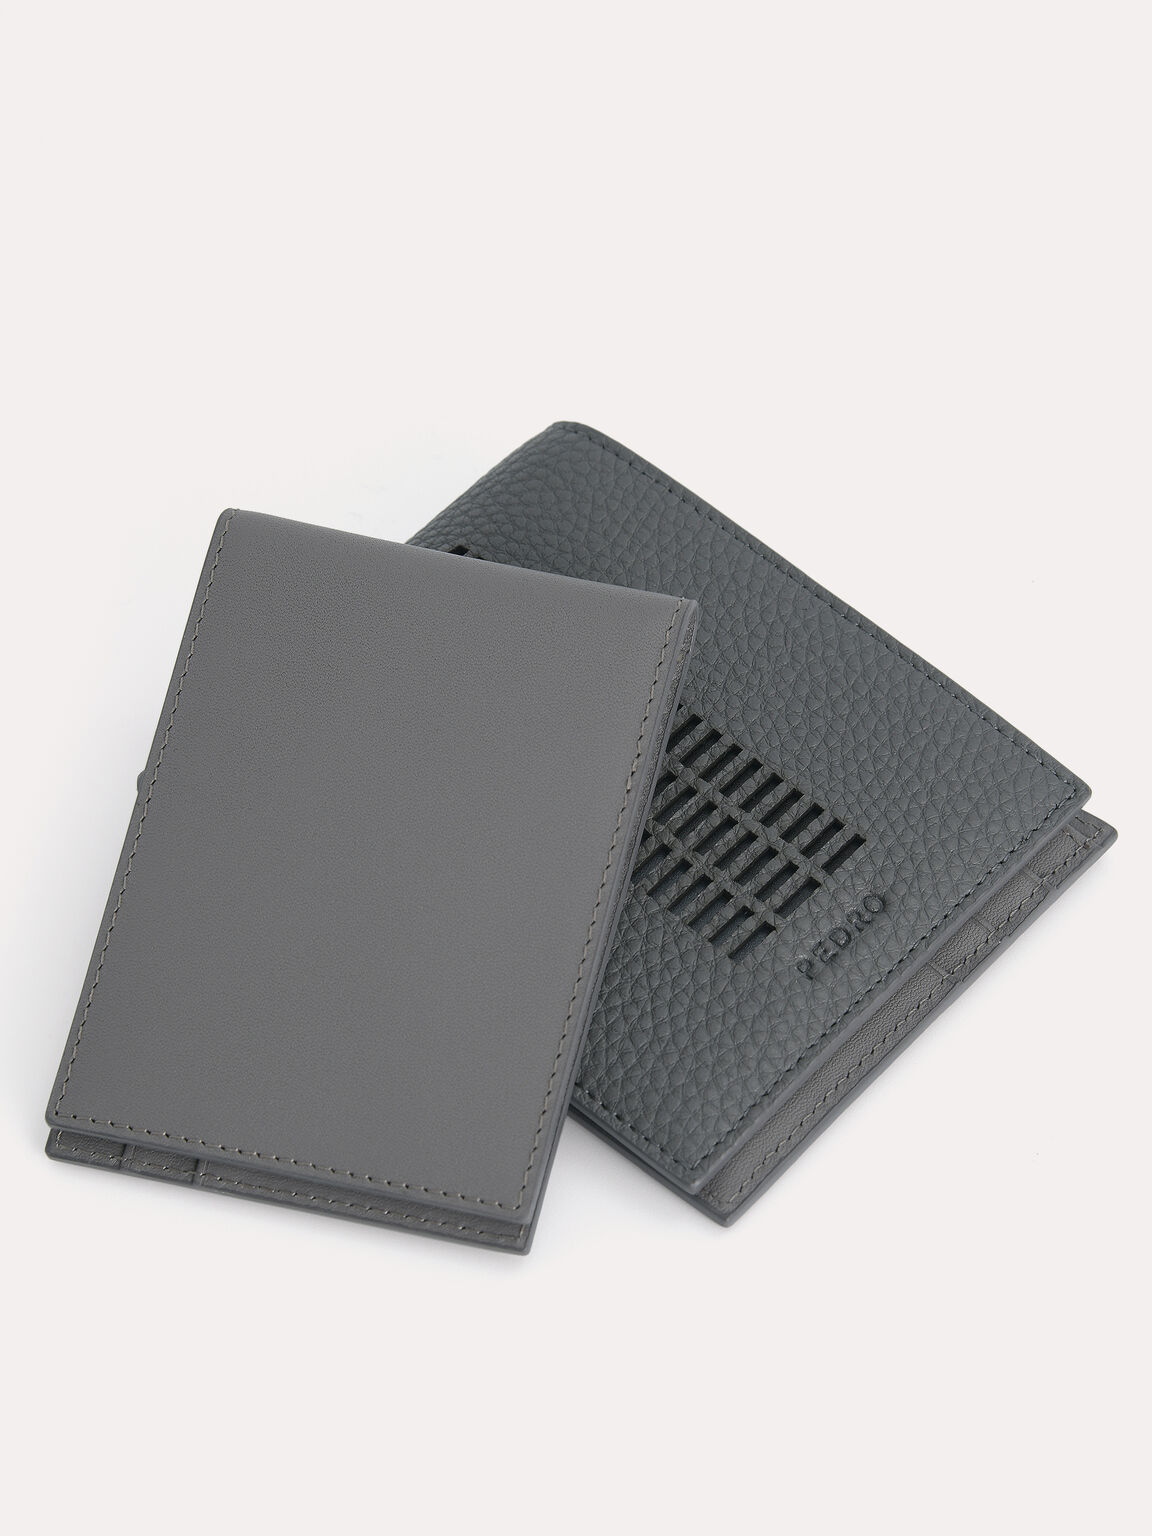 Textured Leather Bi-Fold Wallet with Insert, Grey, hi-res